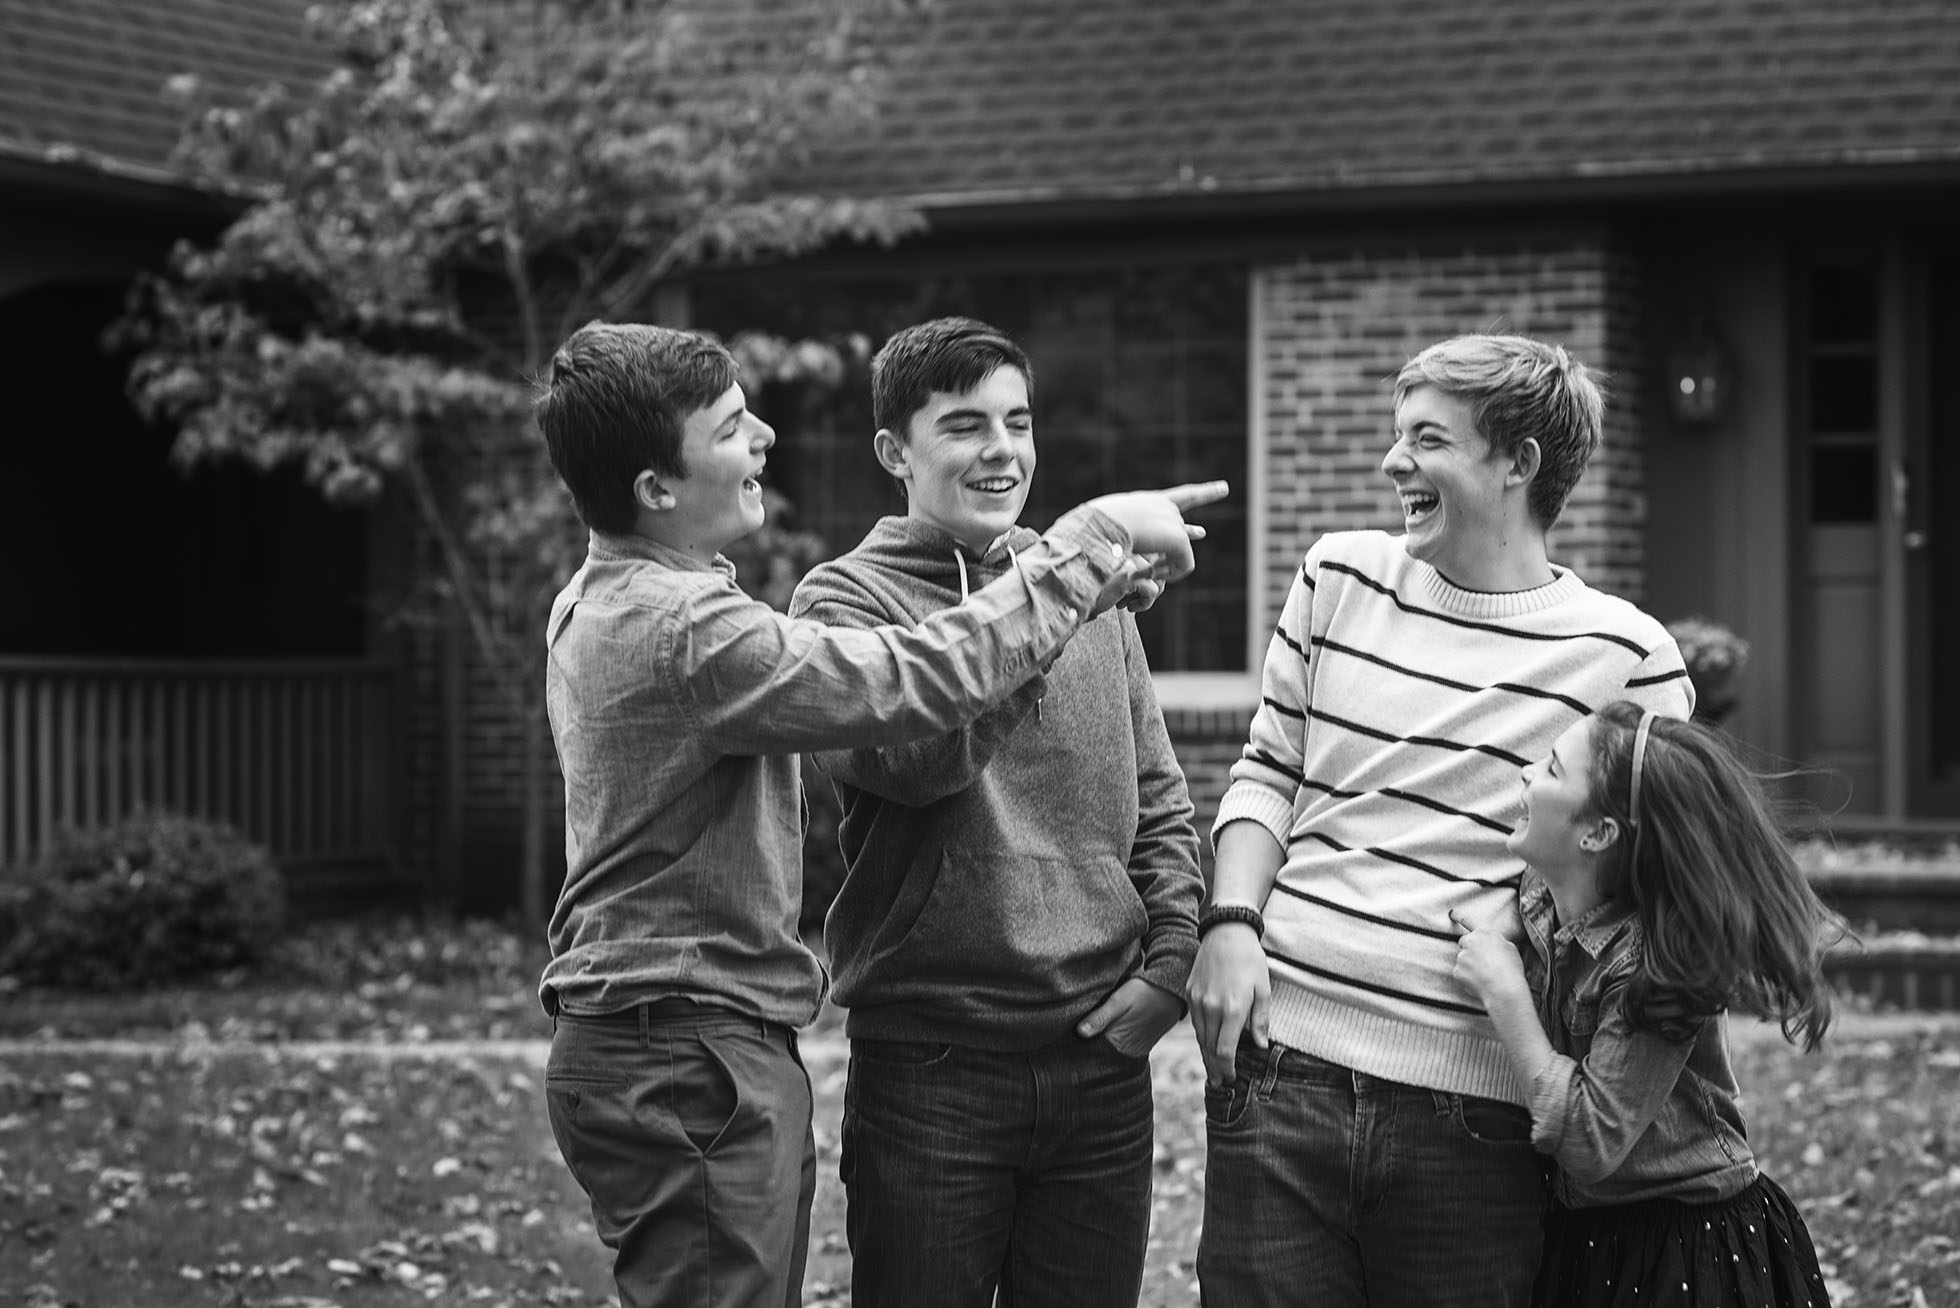 four kids laughing together black and white photo kellie bieser